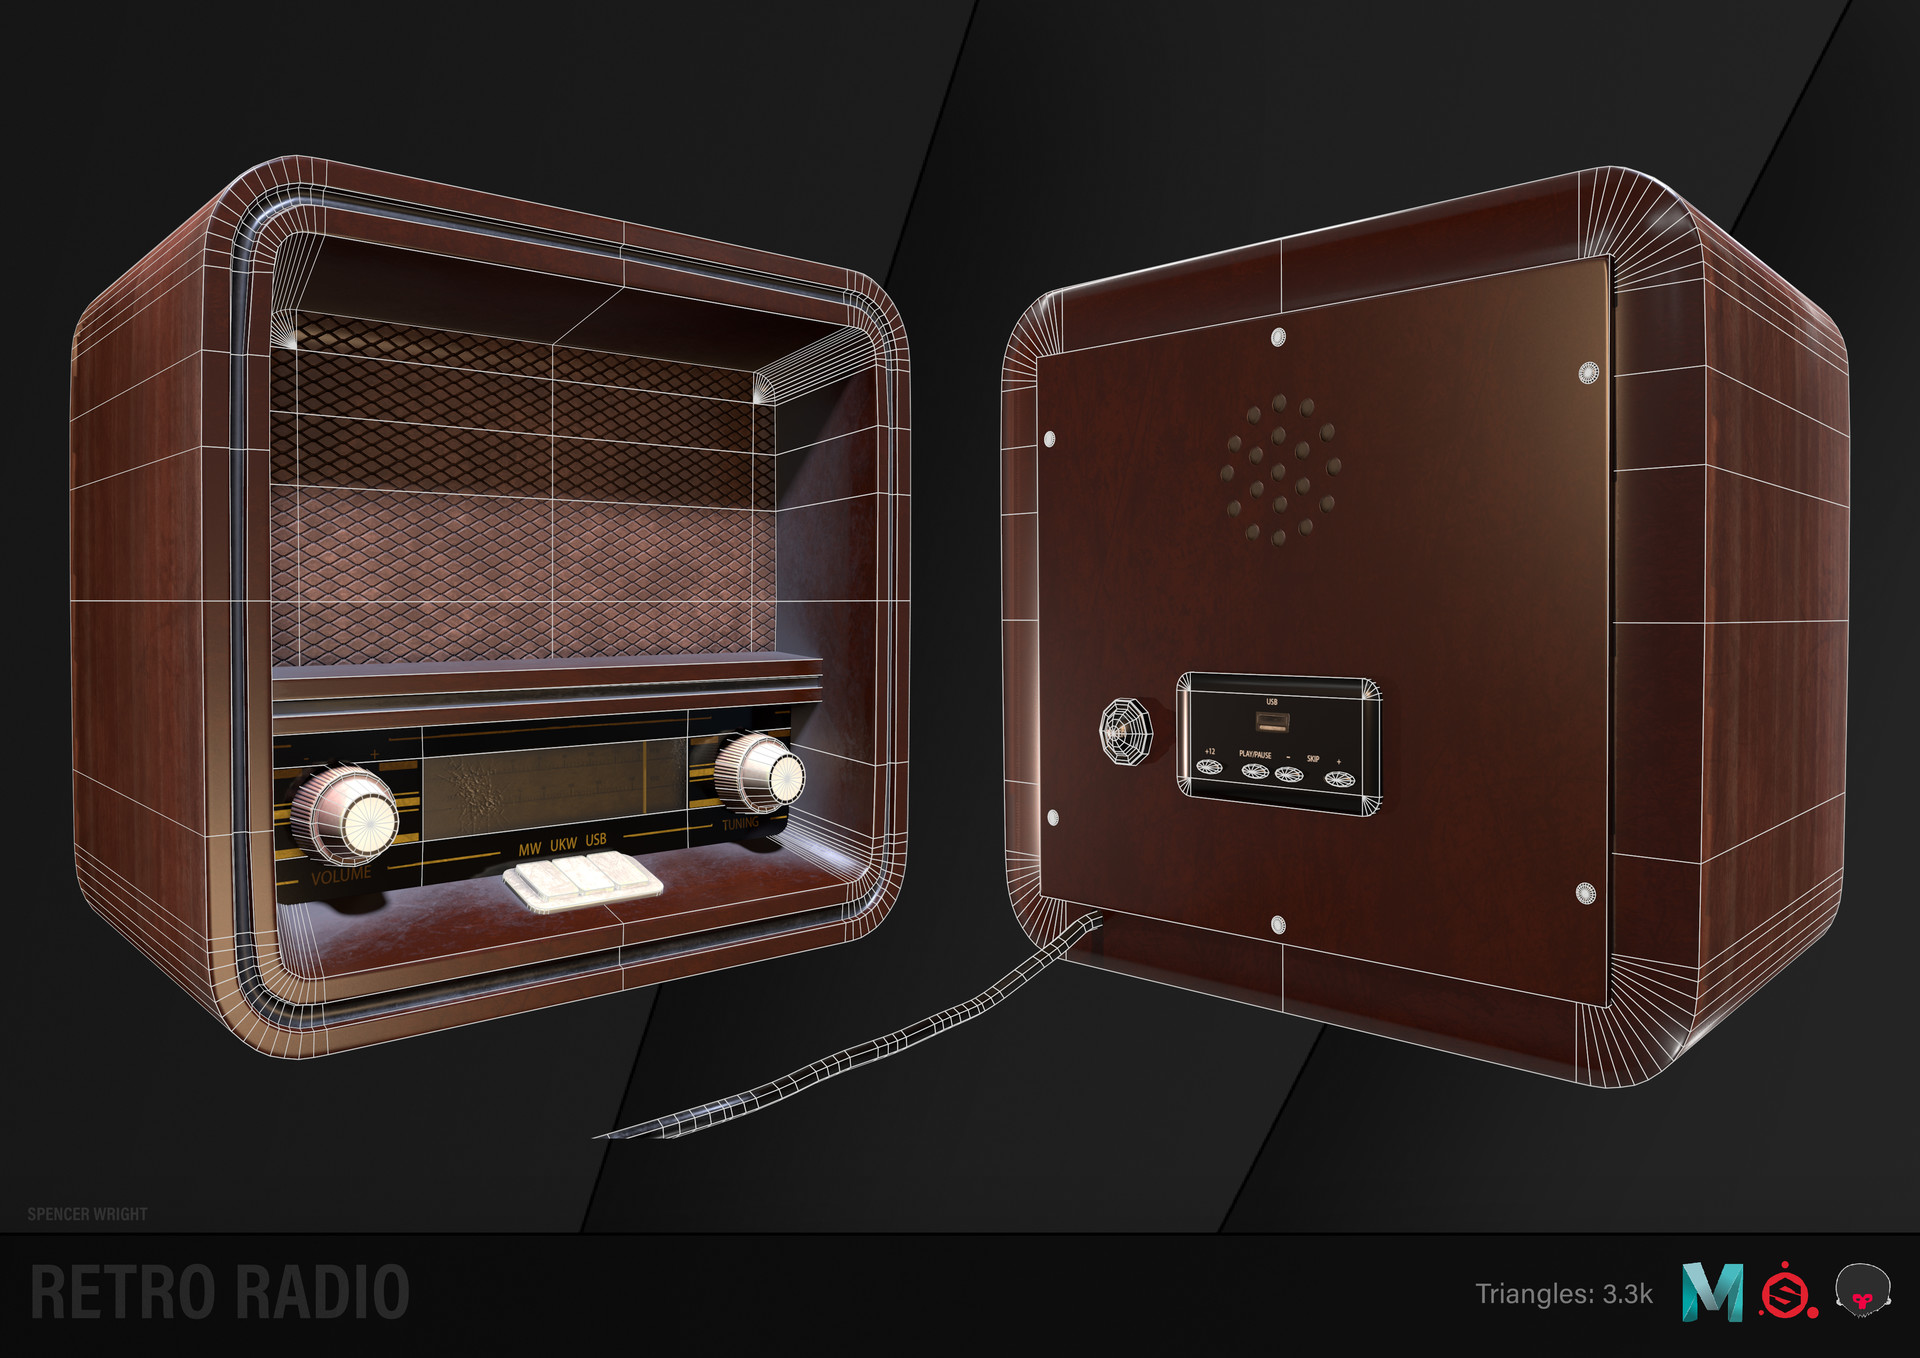 Spencer wright radiorenders2